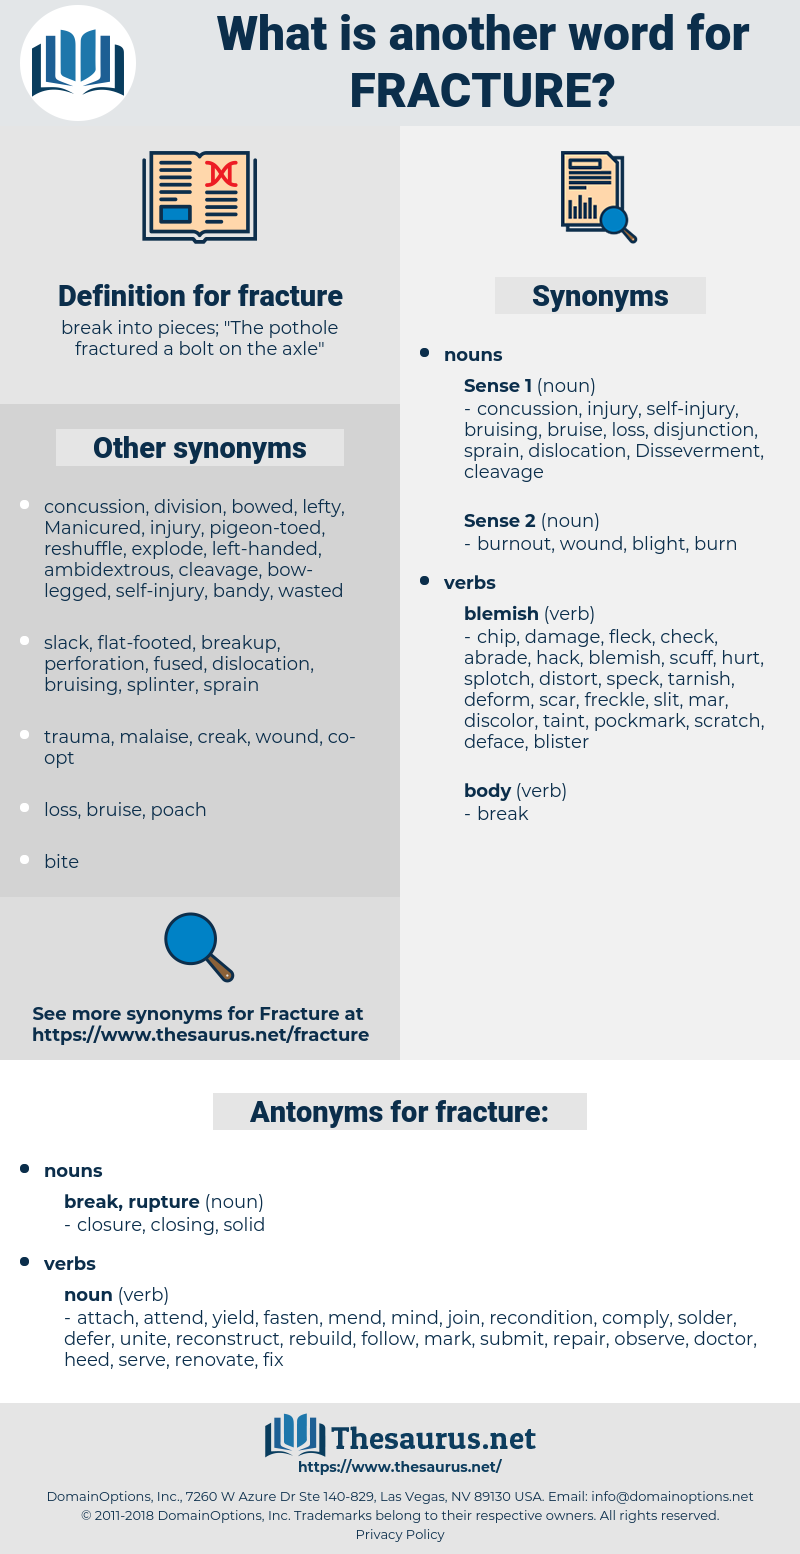 fracture, synonym fracture, another word for fracture, words like fracture, thesaurus fracture